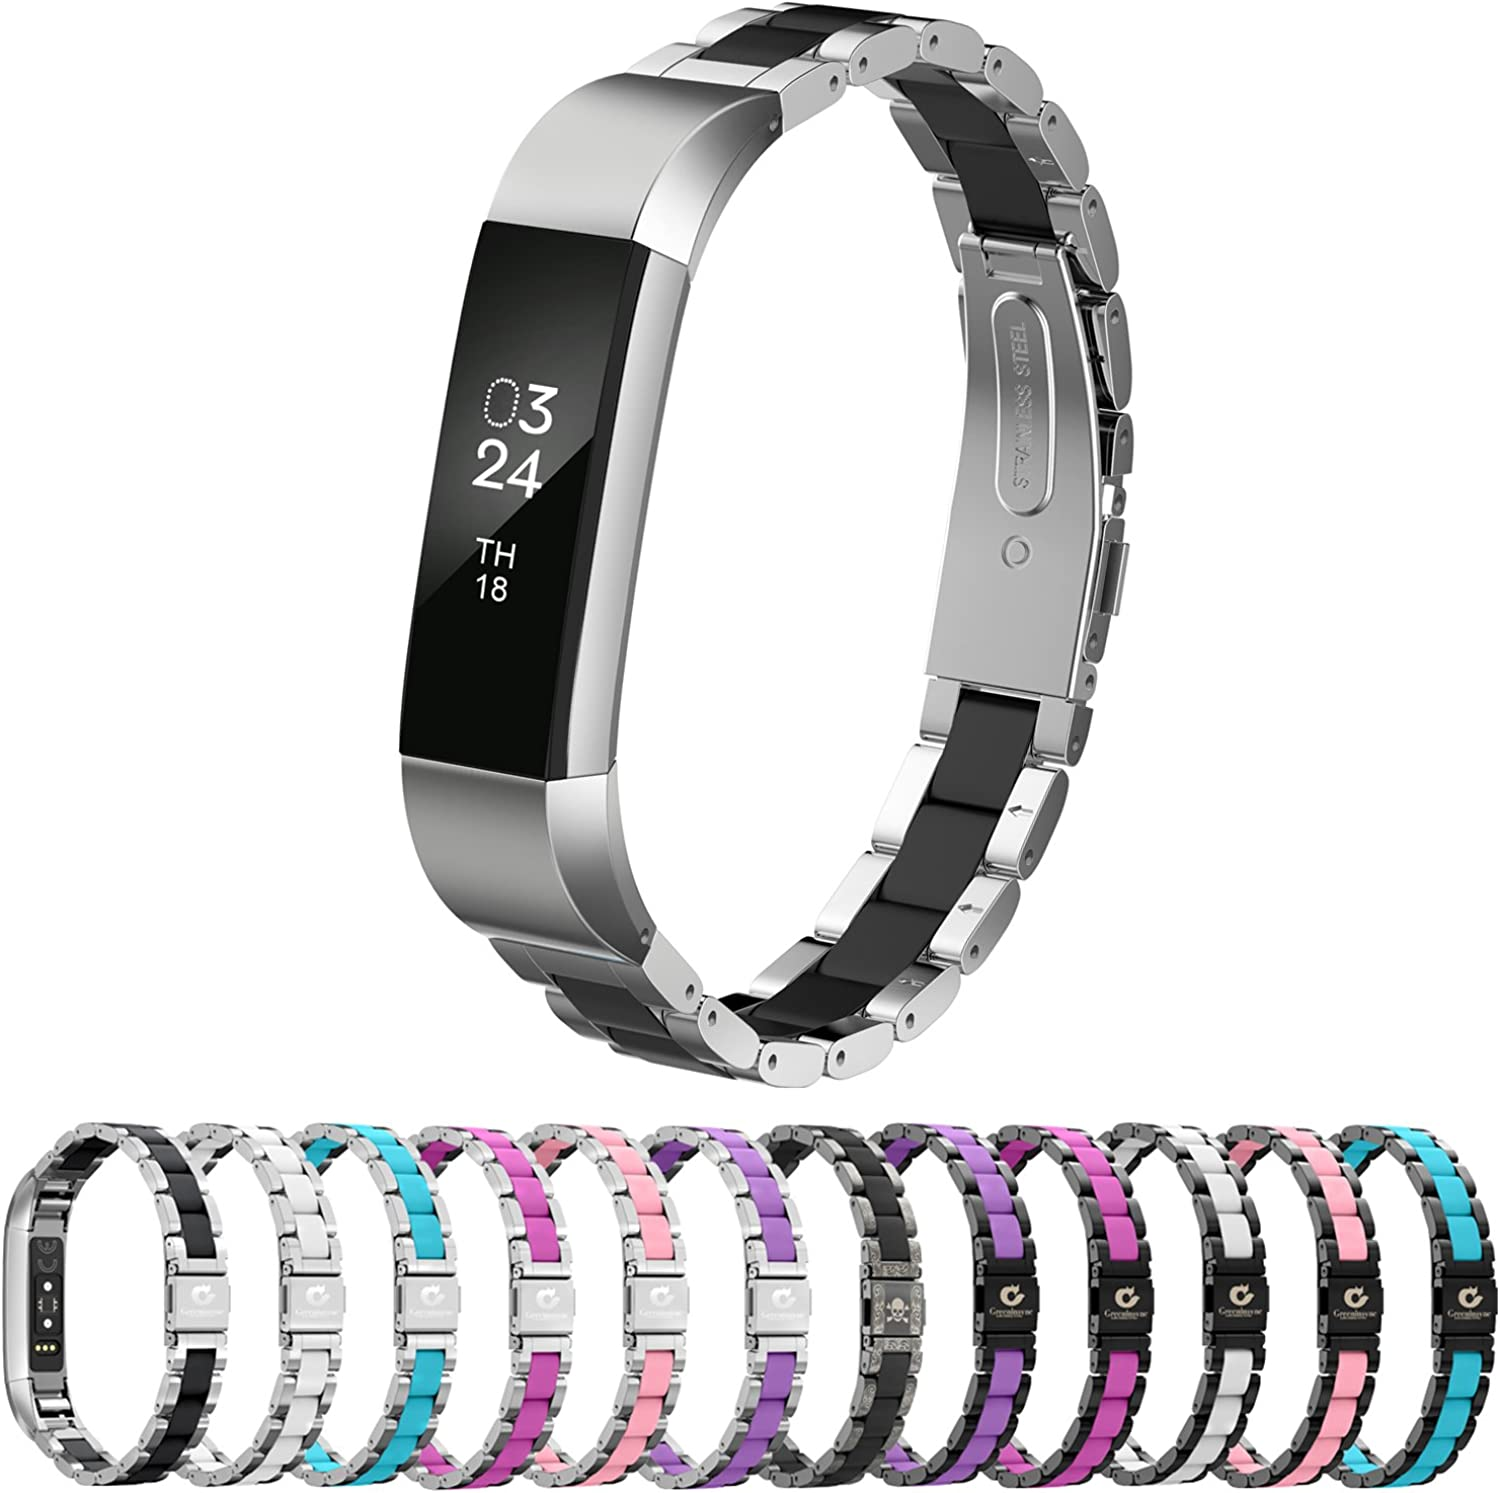 Greeninsync Compatible with Fit bit Alta Bands Metal, Special Edition Replacement for Alta HR Stainless Steel Bands Adjustable Accessory Wristband Small Large for Alta Bracelet Women Men Girls Boys